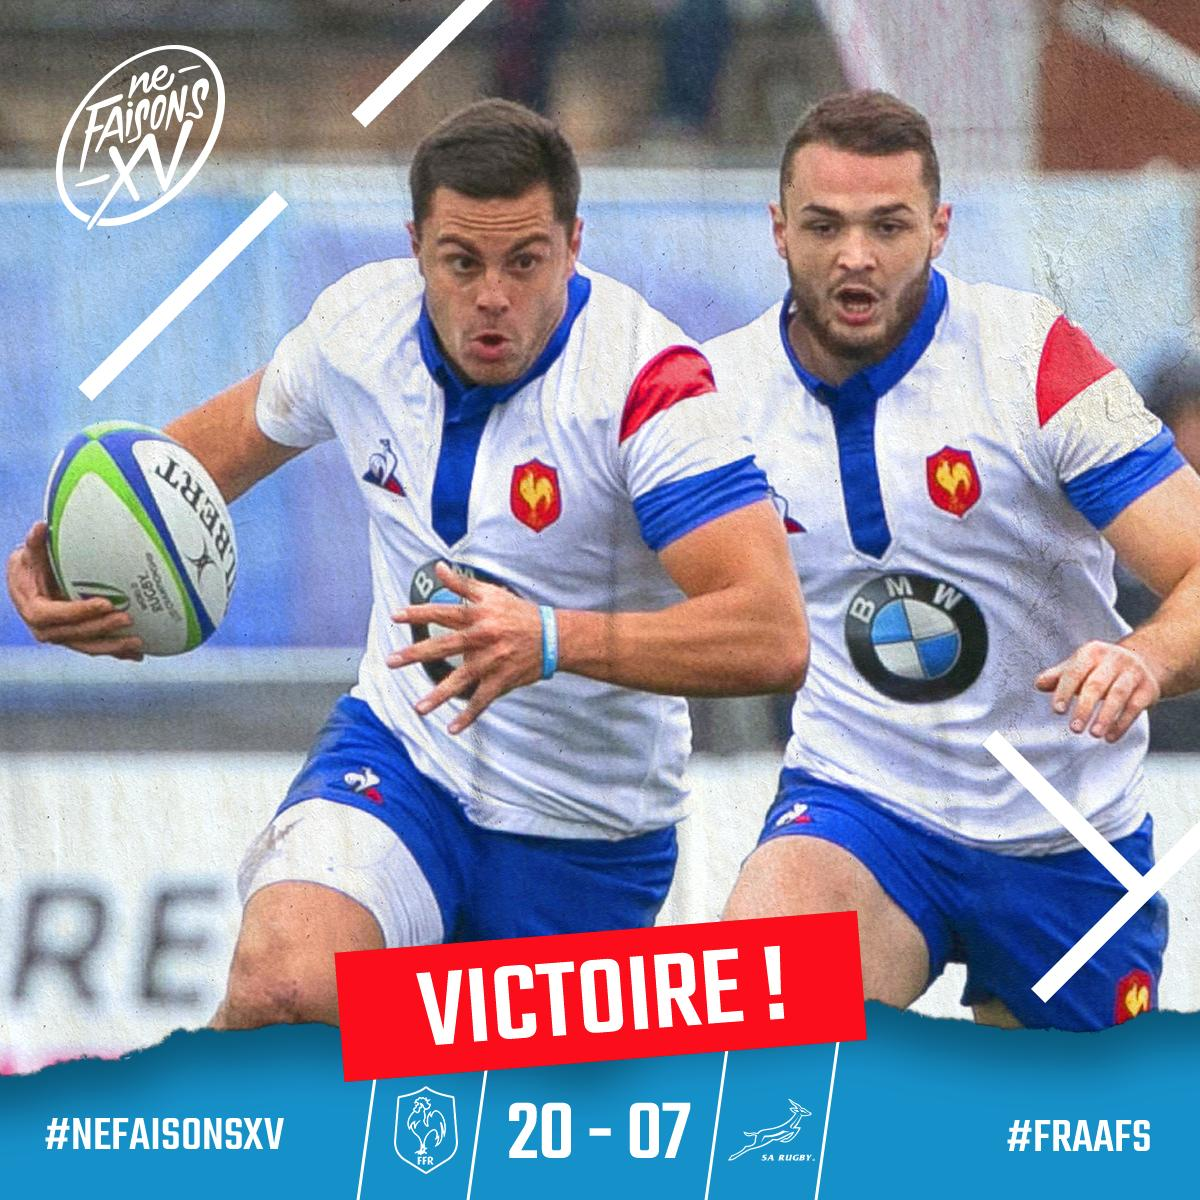 @FFRugby's photo on #fraafs